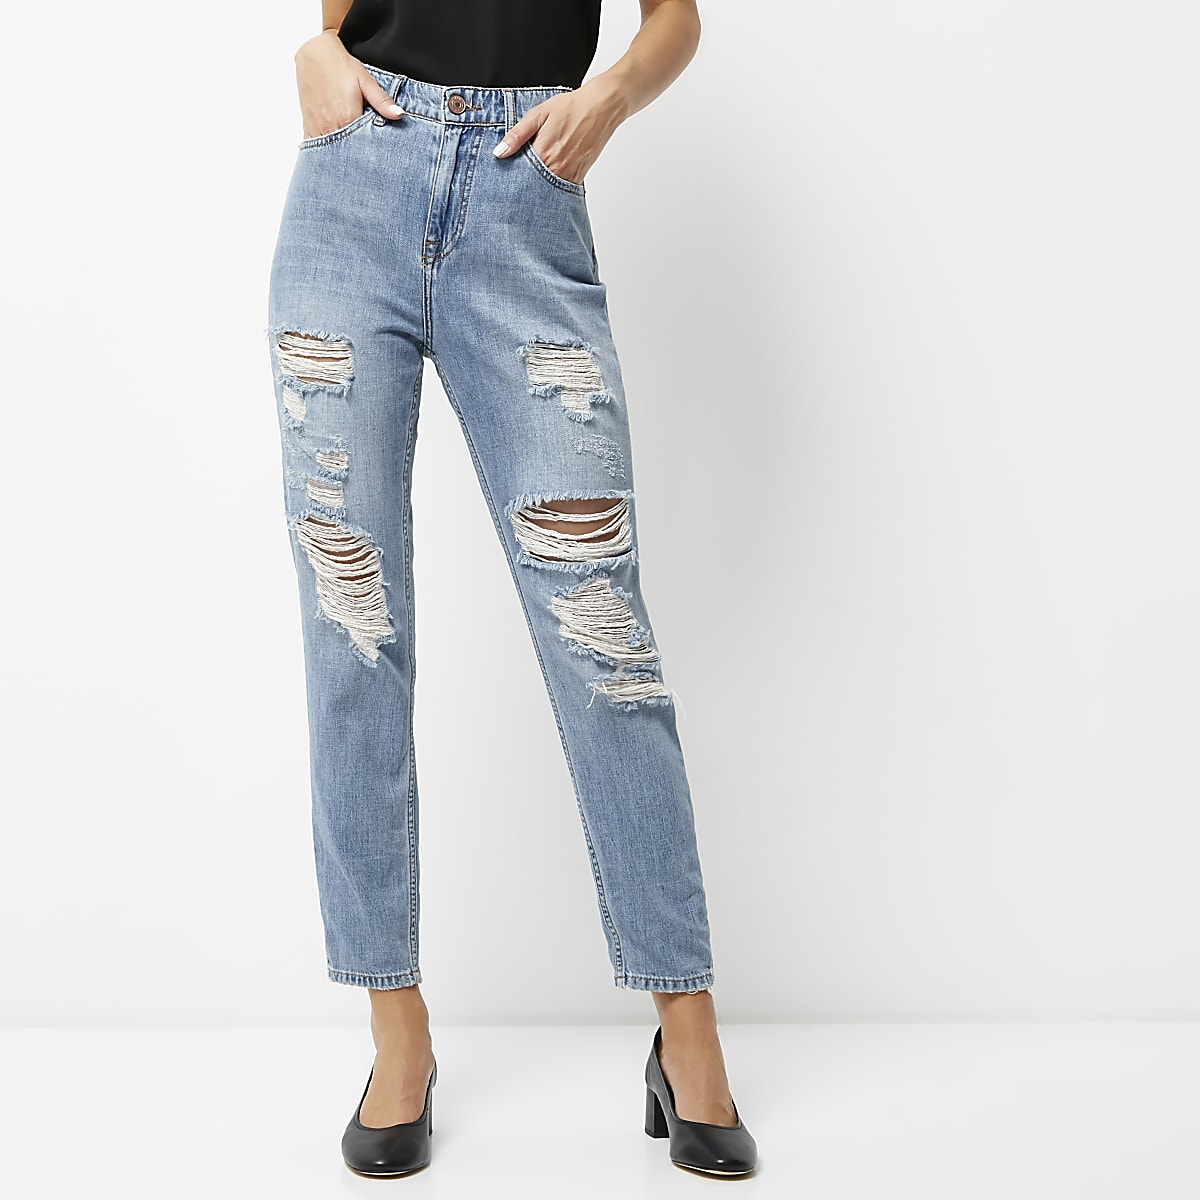 fac6e8f44ed00c Middenblauwe wash ripped mom jeans - Mom jeans - Jeans - Dames